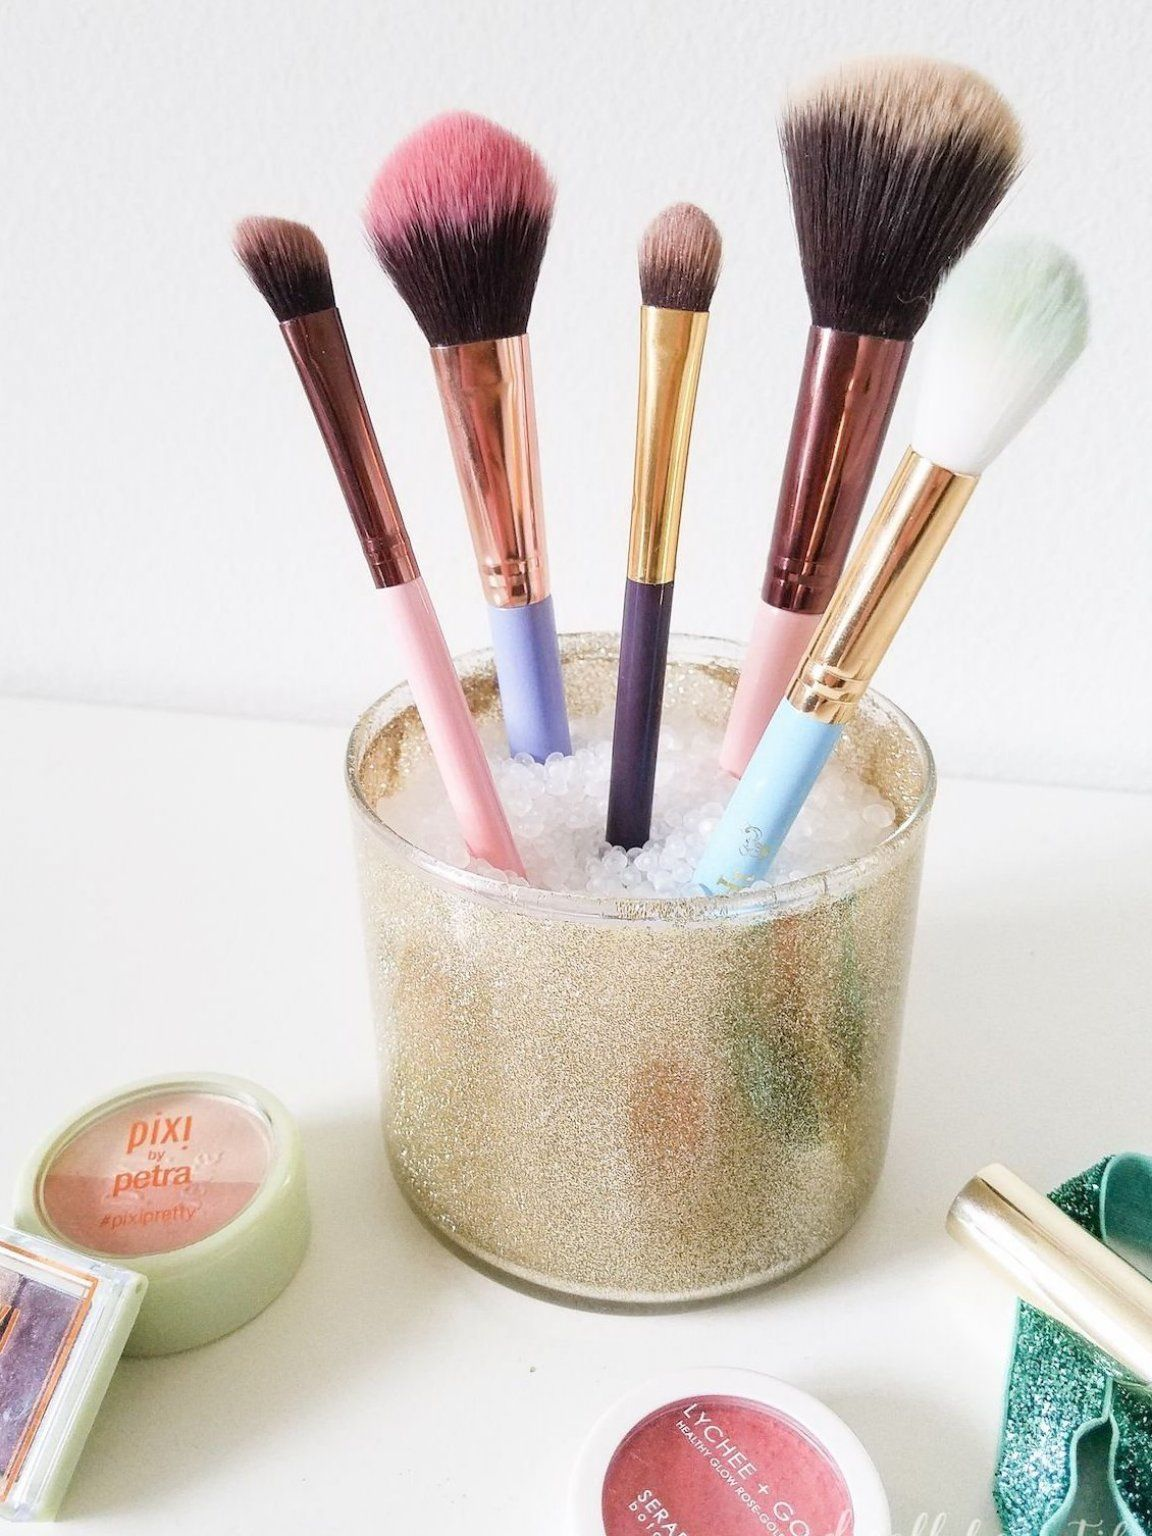 Learn how to make a beautiful DIY makeup brush holder by